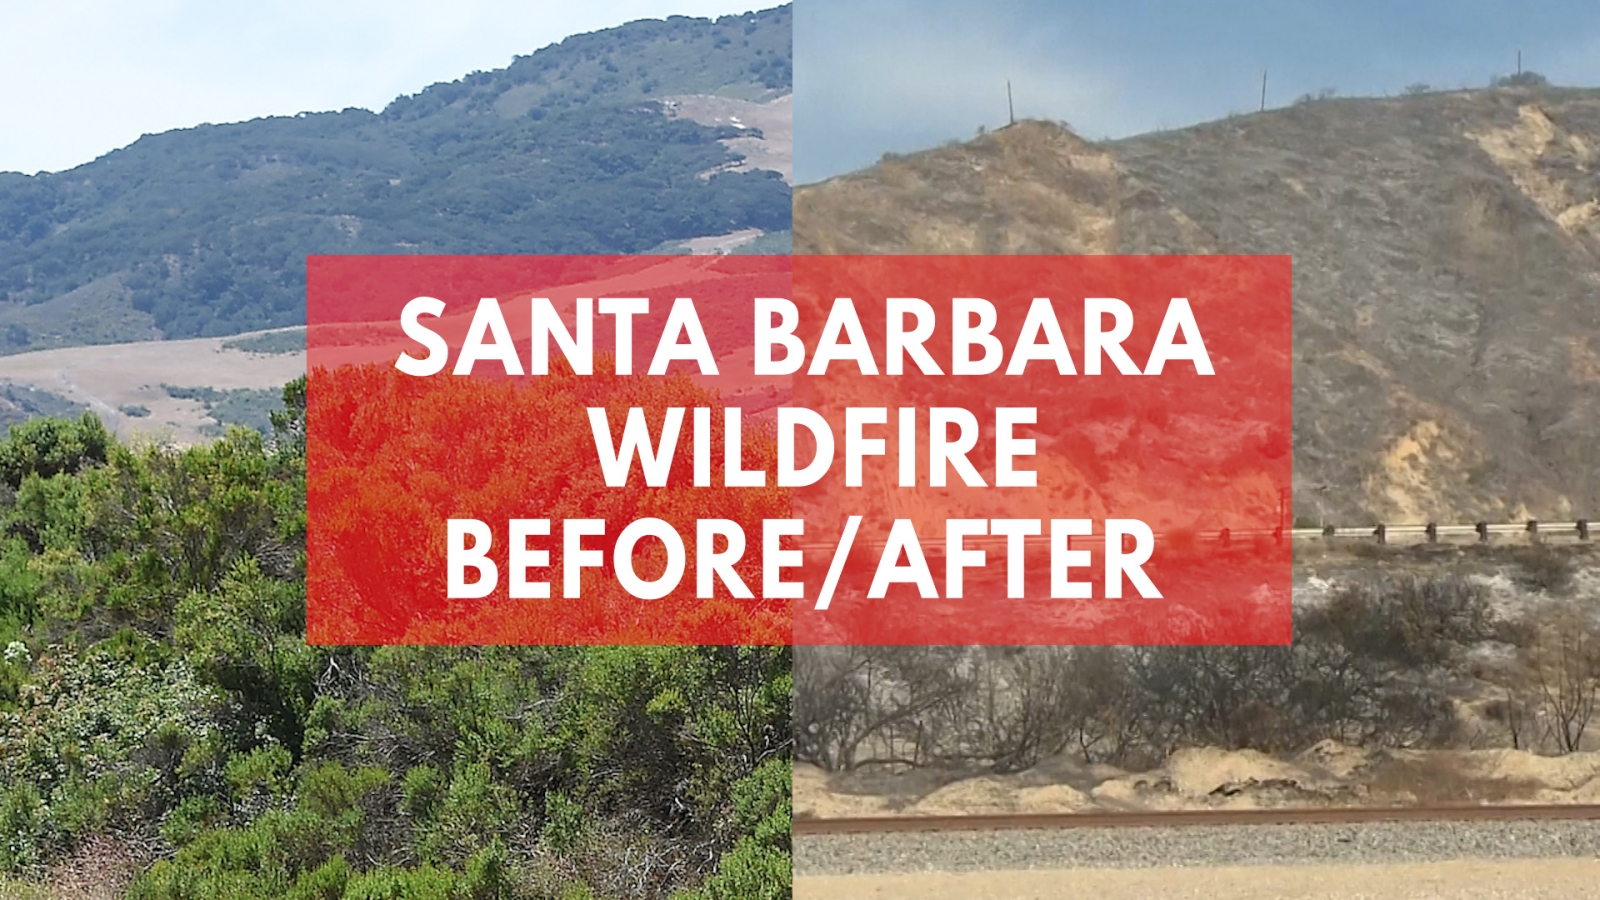 before-and-after-images-show-effects-of-wildfire-in-santa-barbara